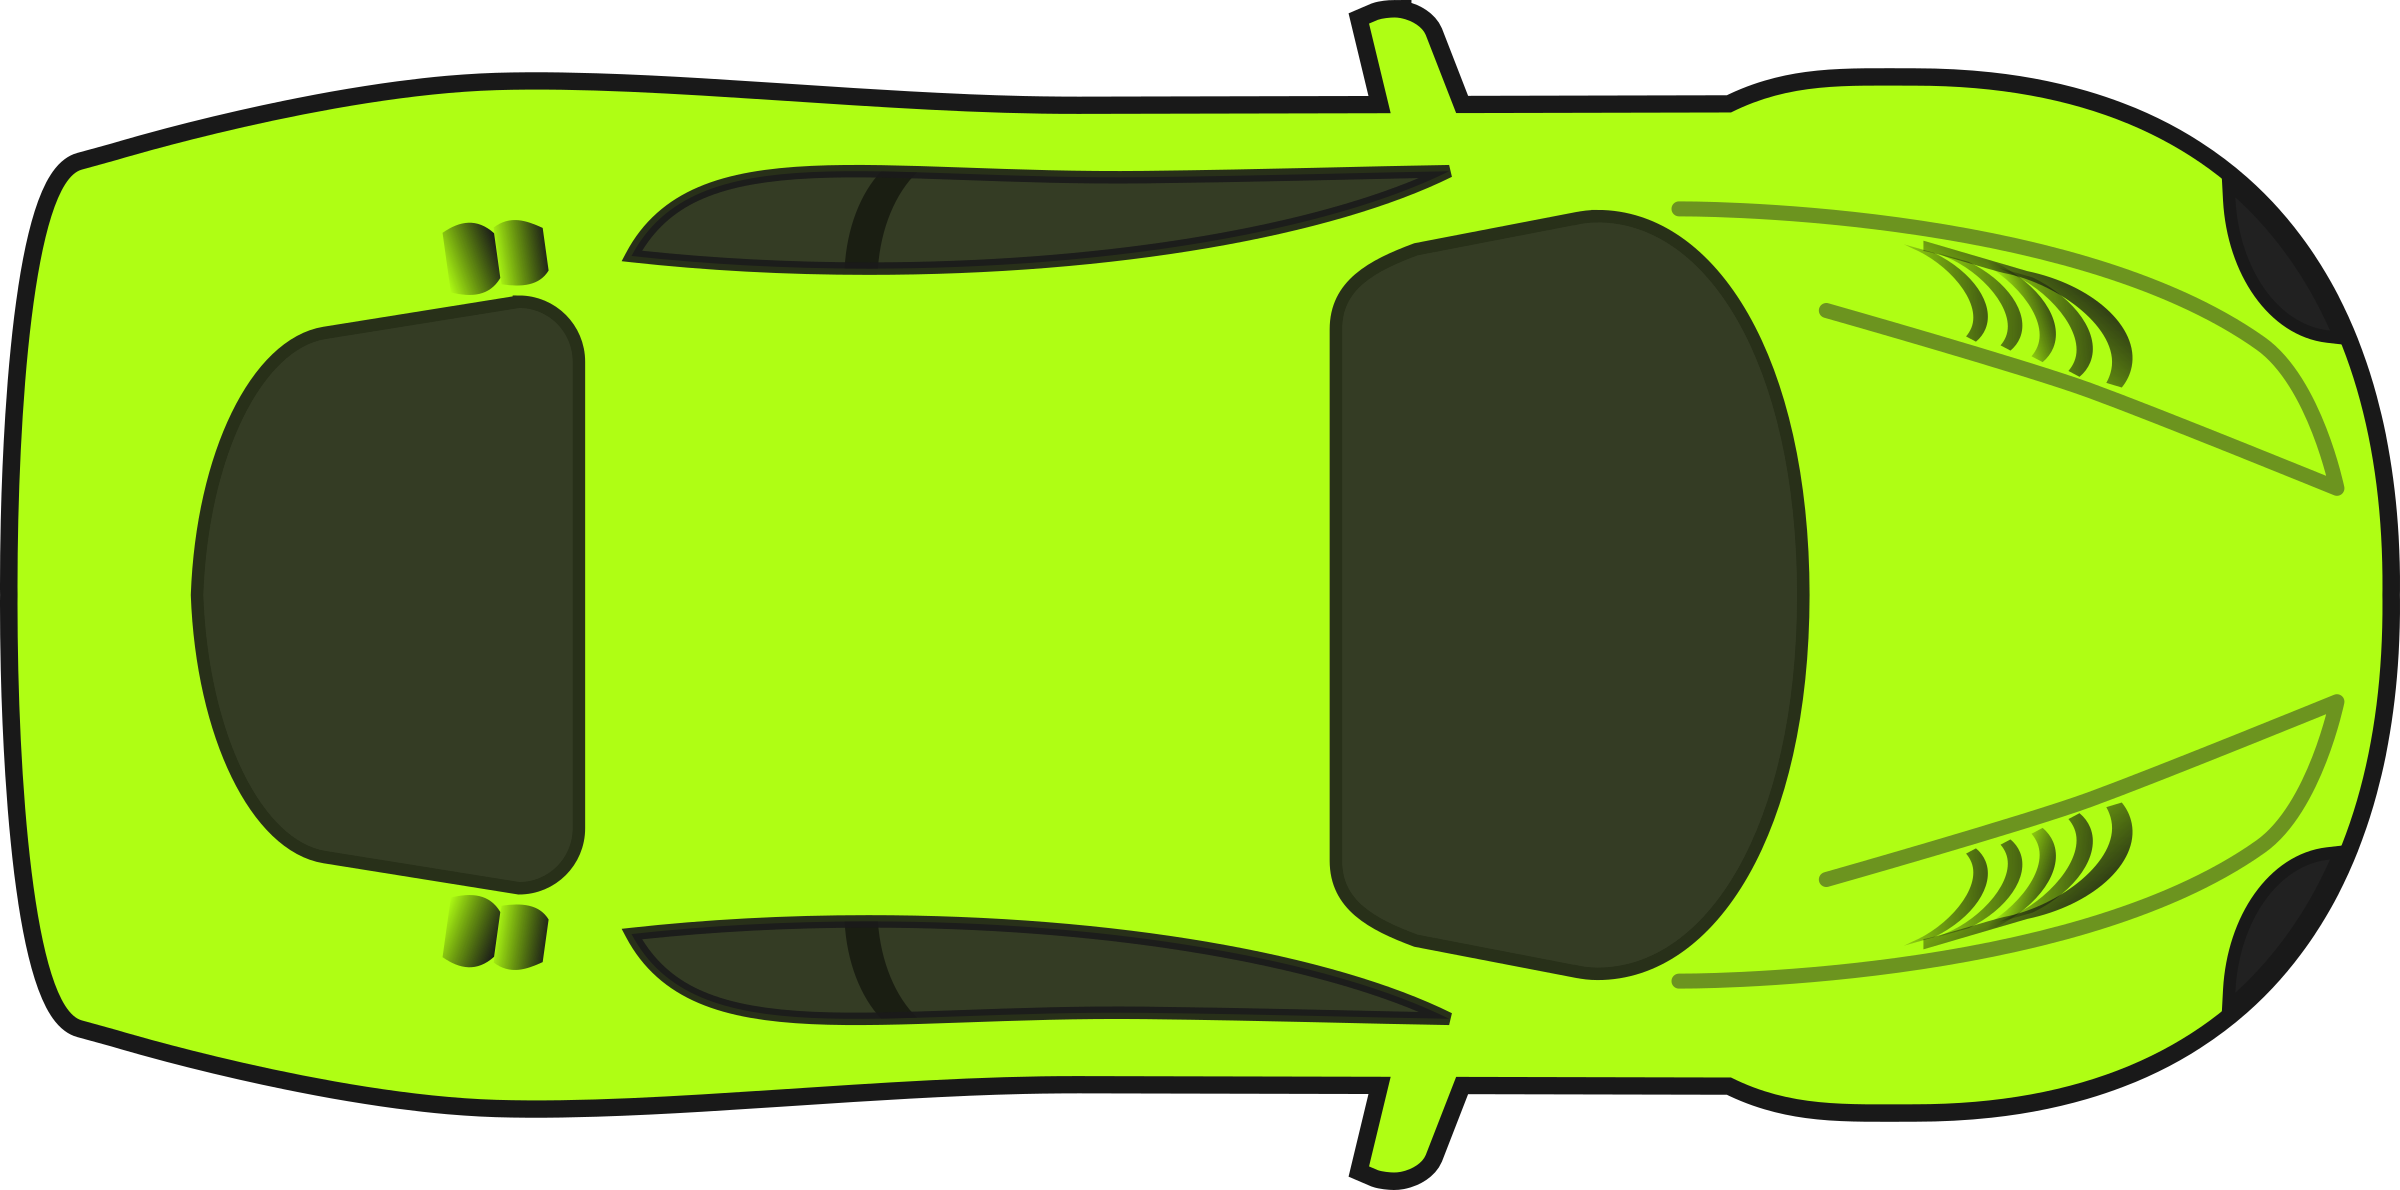 Bright Green Racing Car (Top View) by qubodup